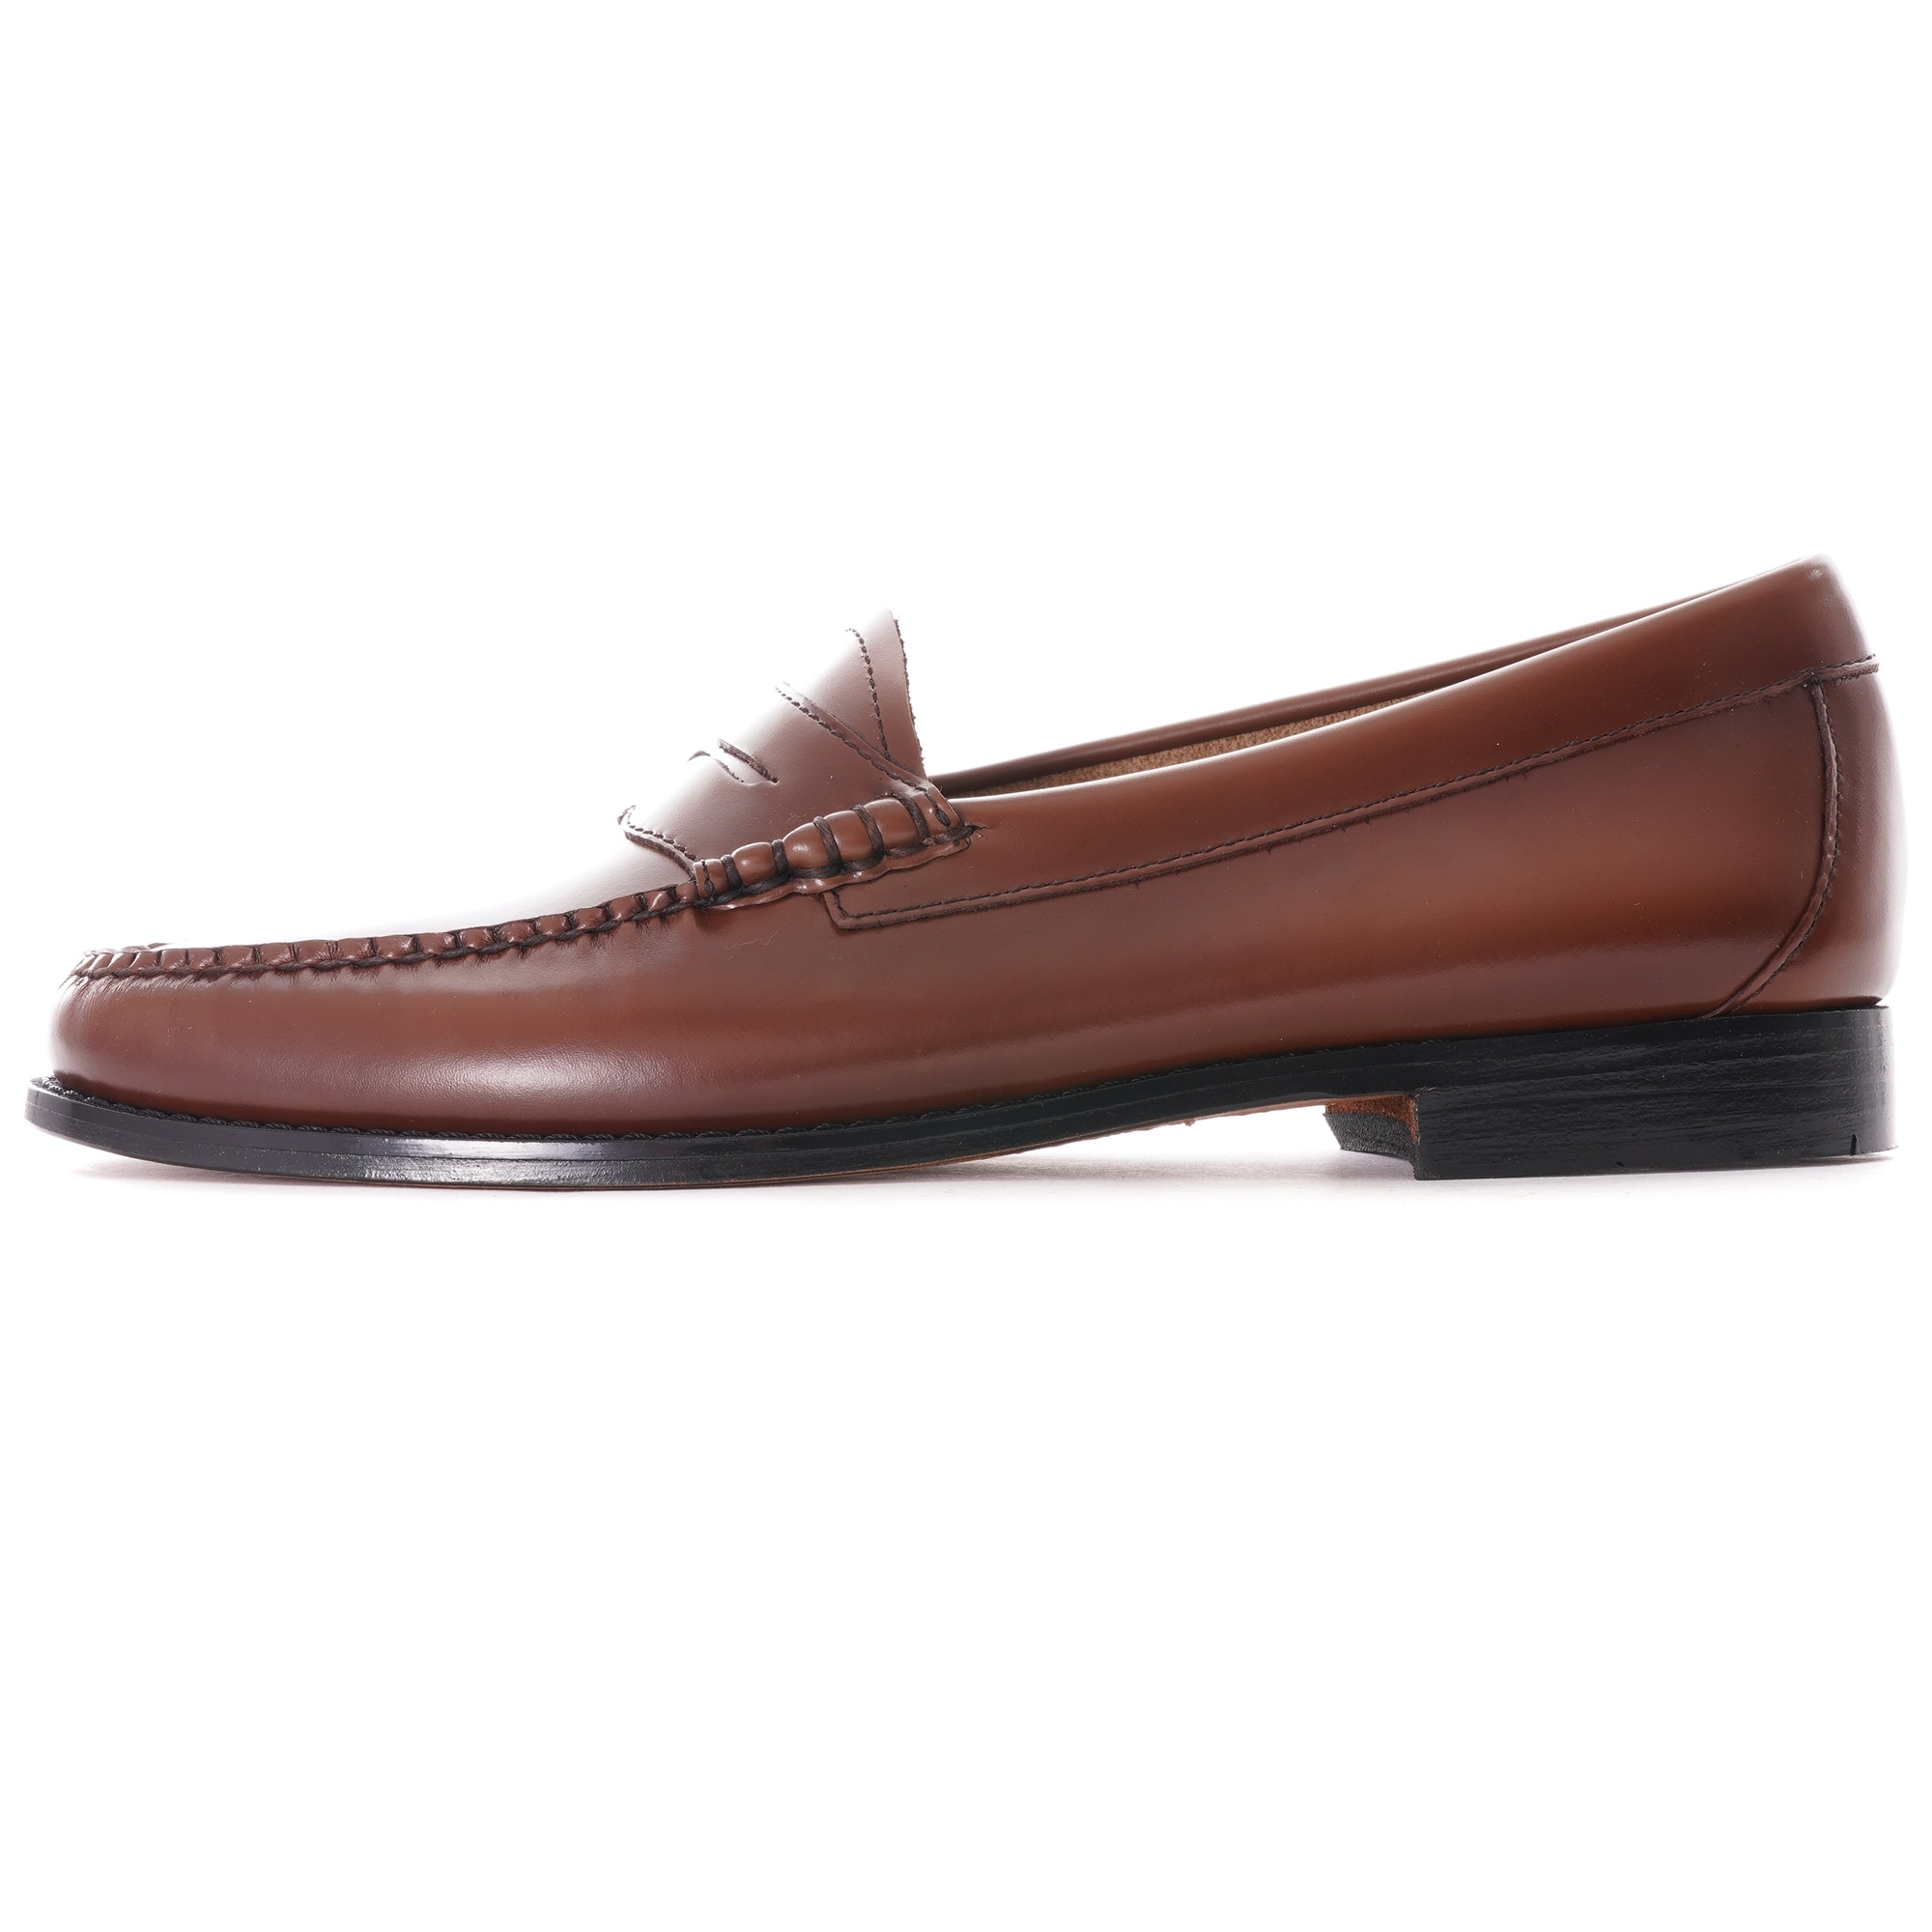 G.H Bass Weejuns Women's Penny Loafers (Cognac) at Dandy ...